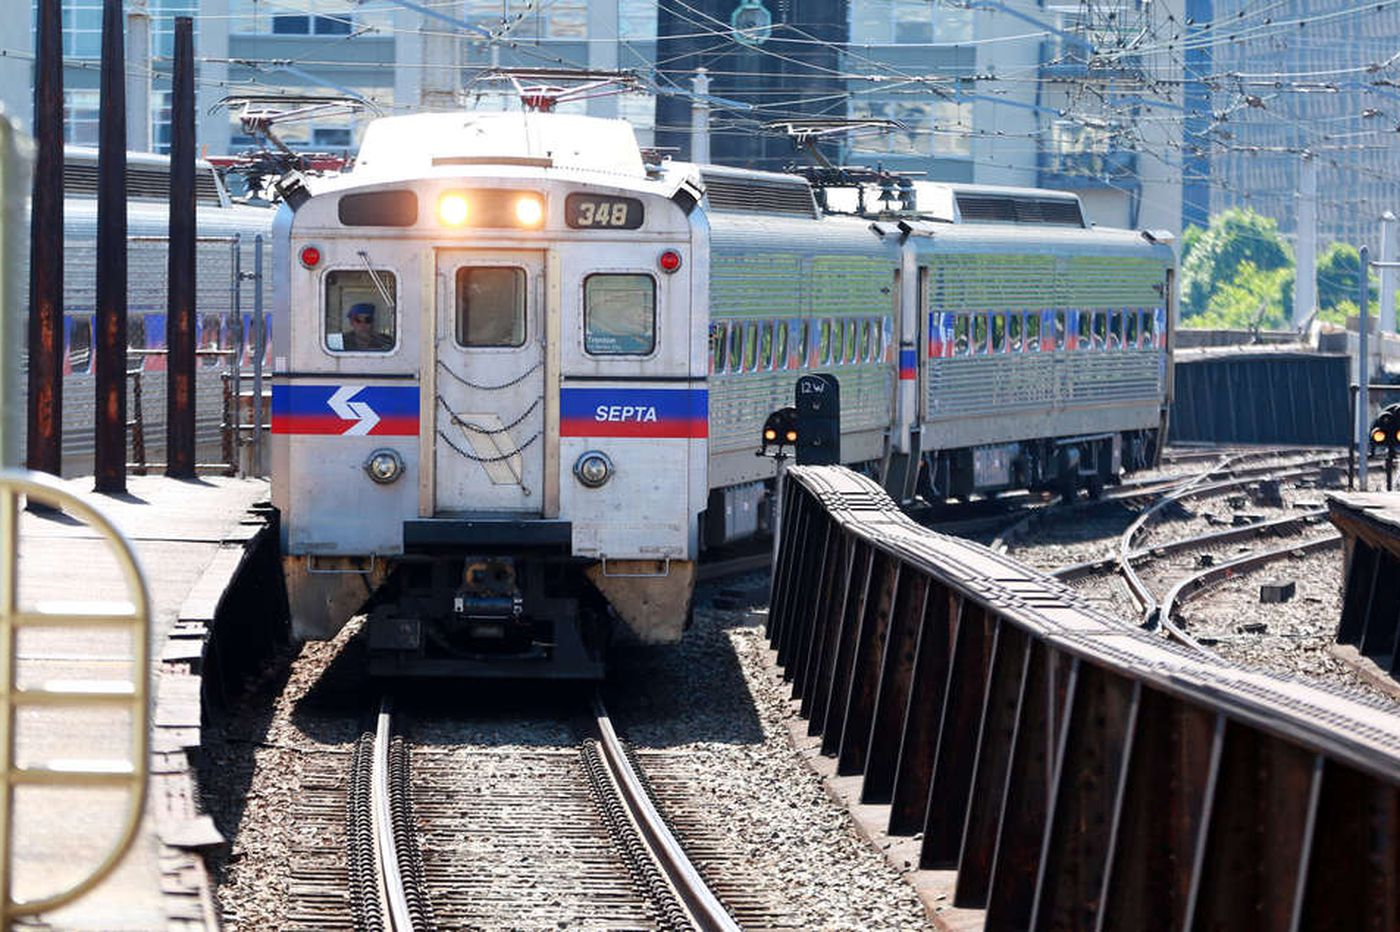 300 SEPTA rail passengers stranded for hours after train snags overhead wires